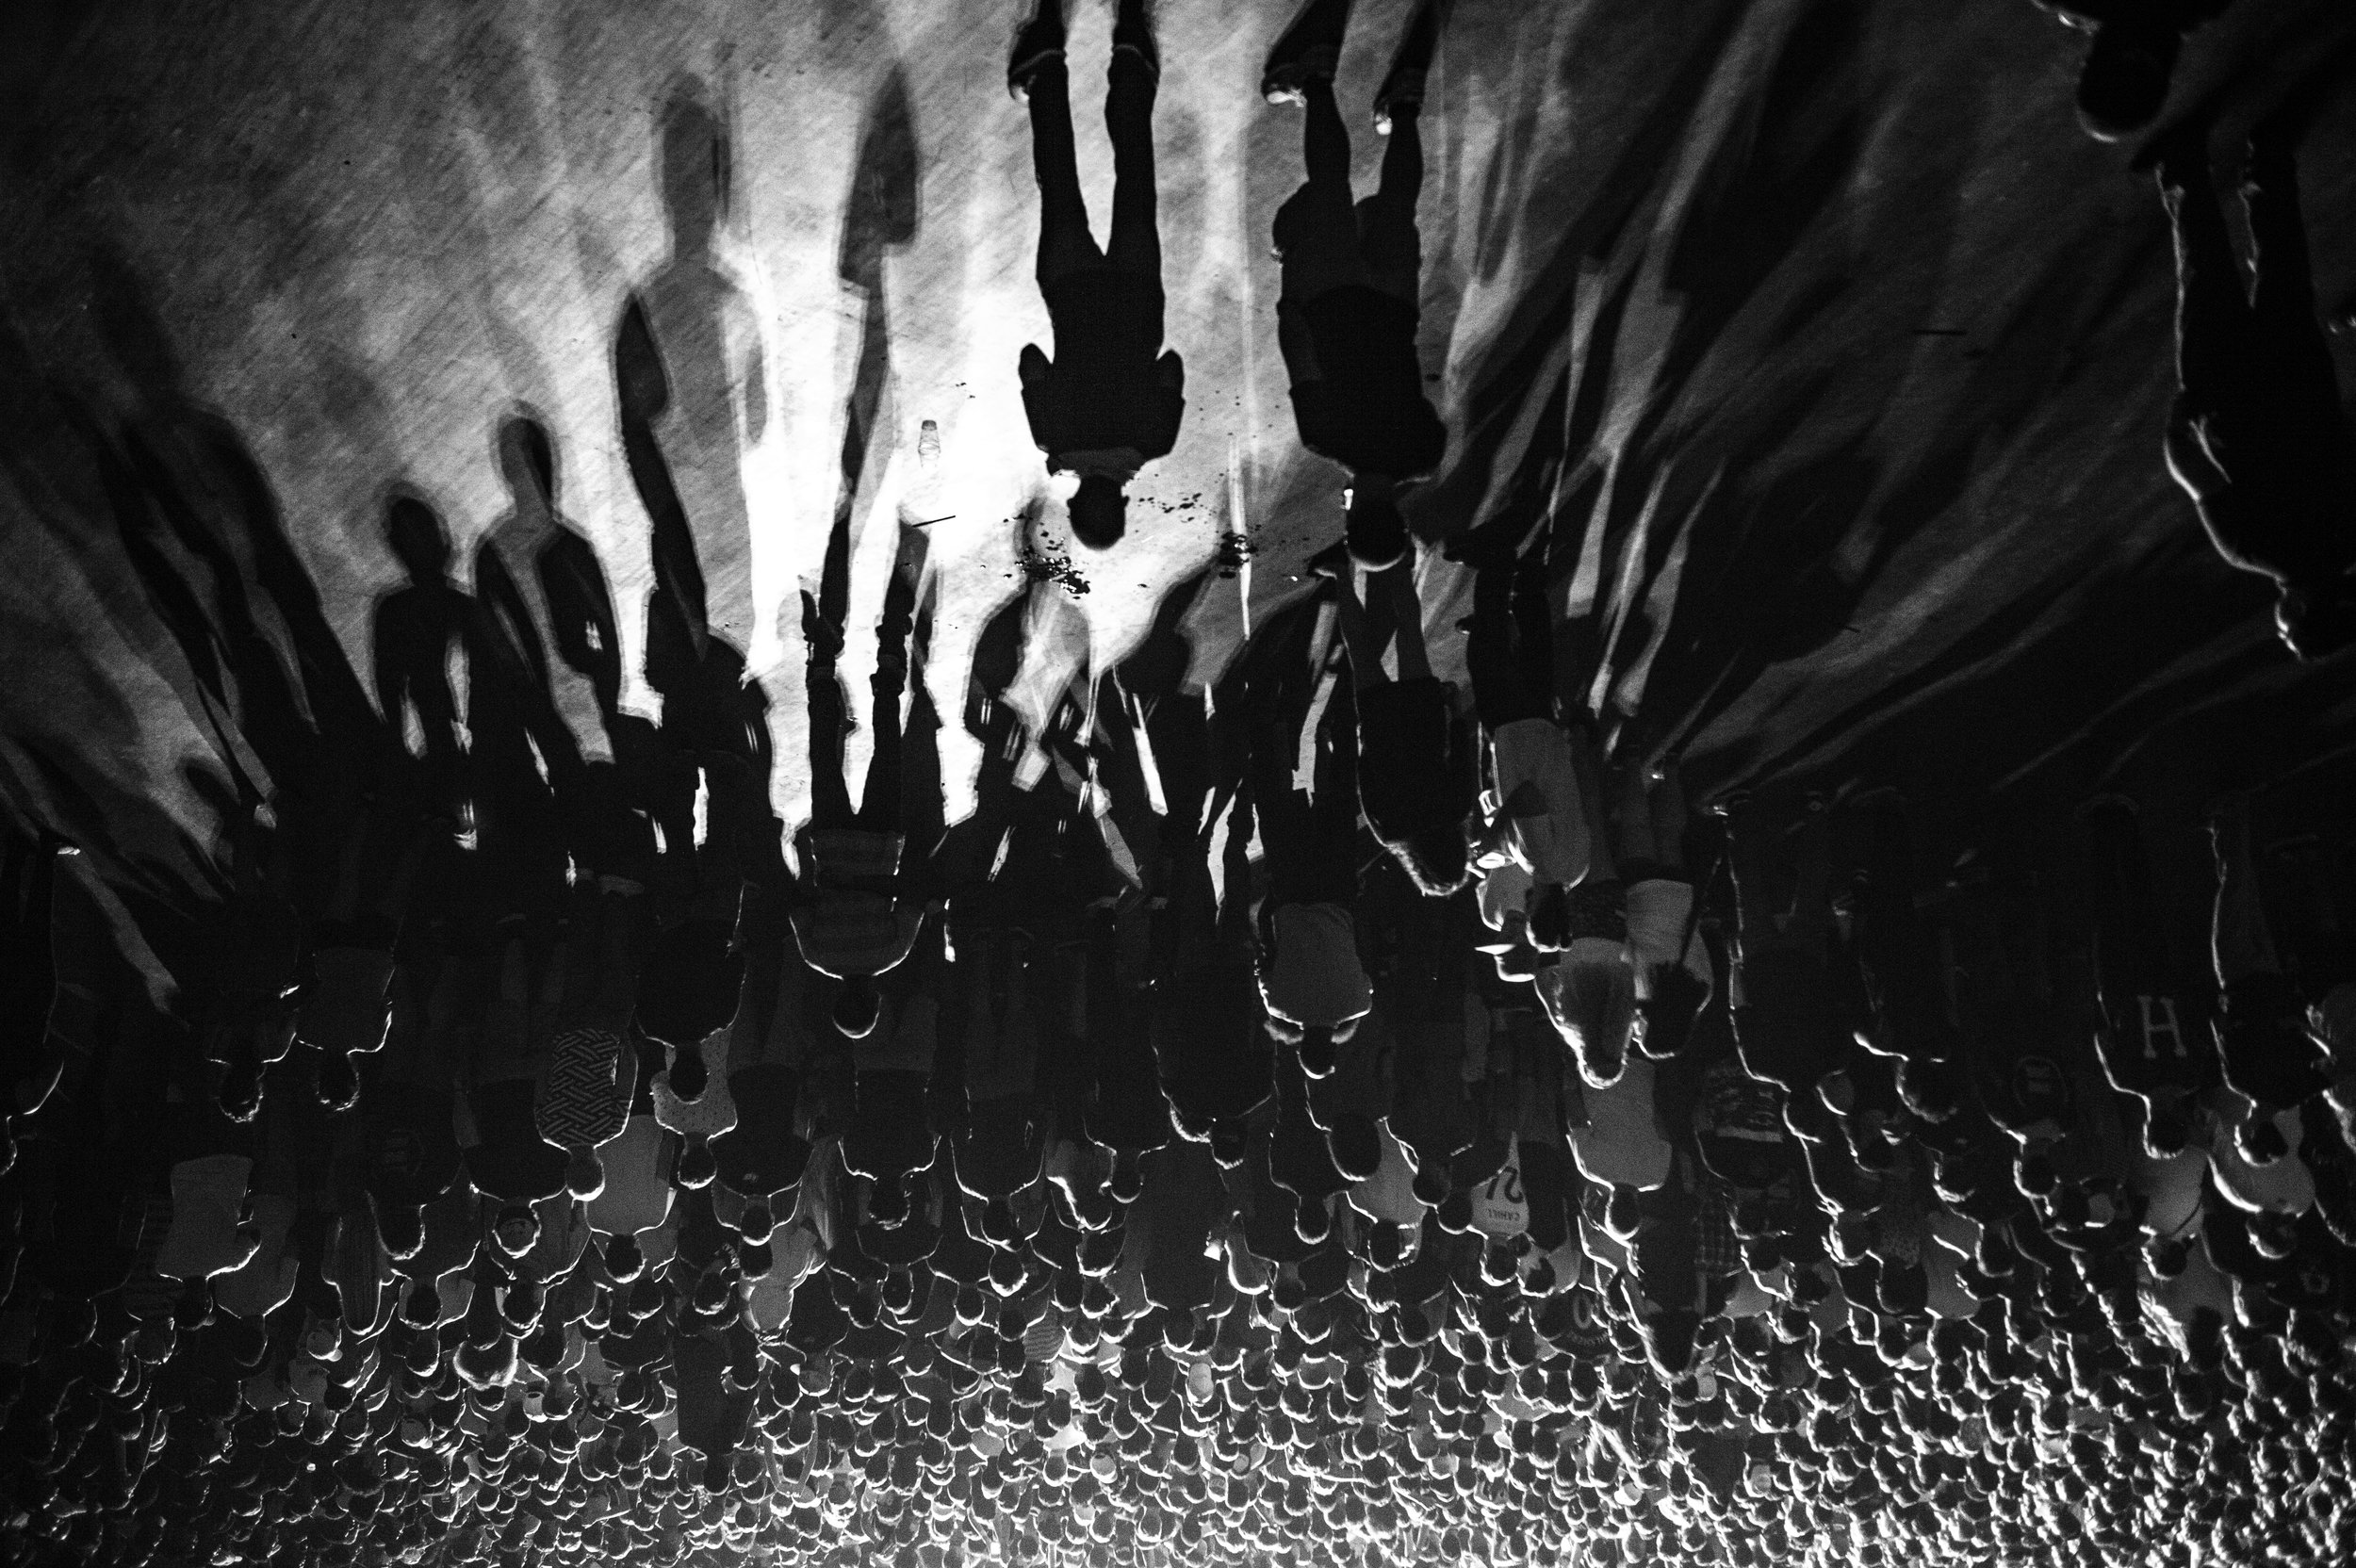 Crowd shadows during a show in DC